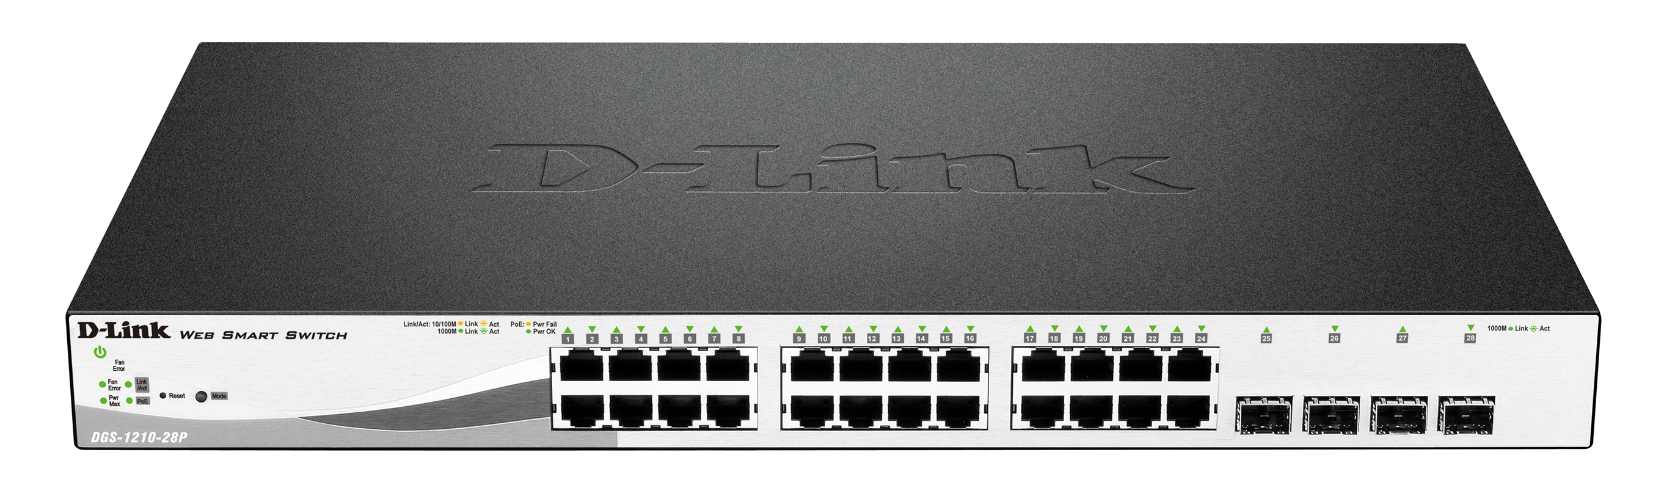 24 PoE port with 4 x SFP ports with 193W power budget